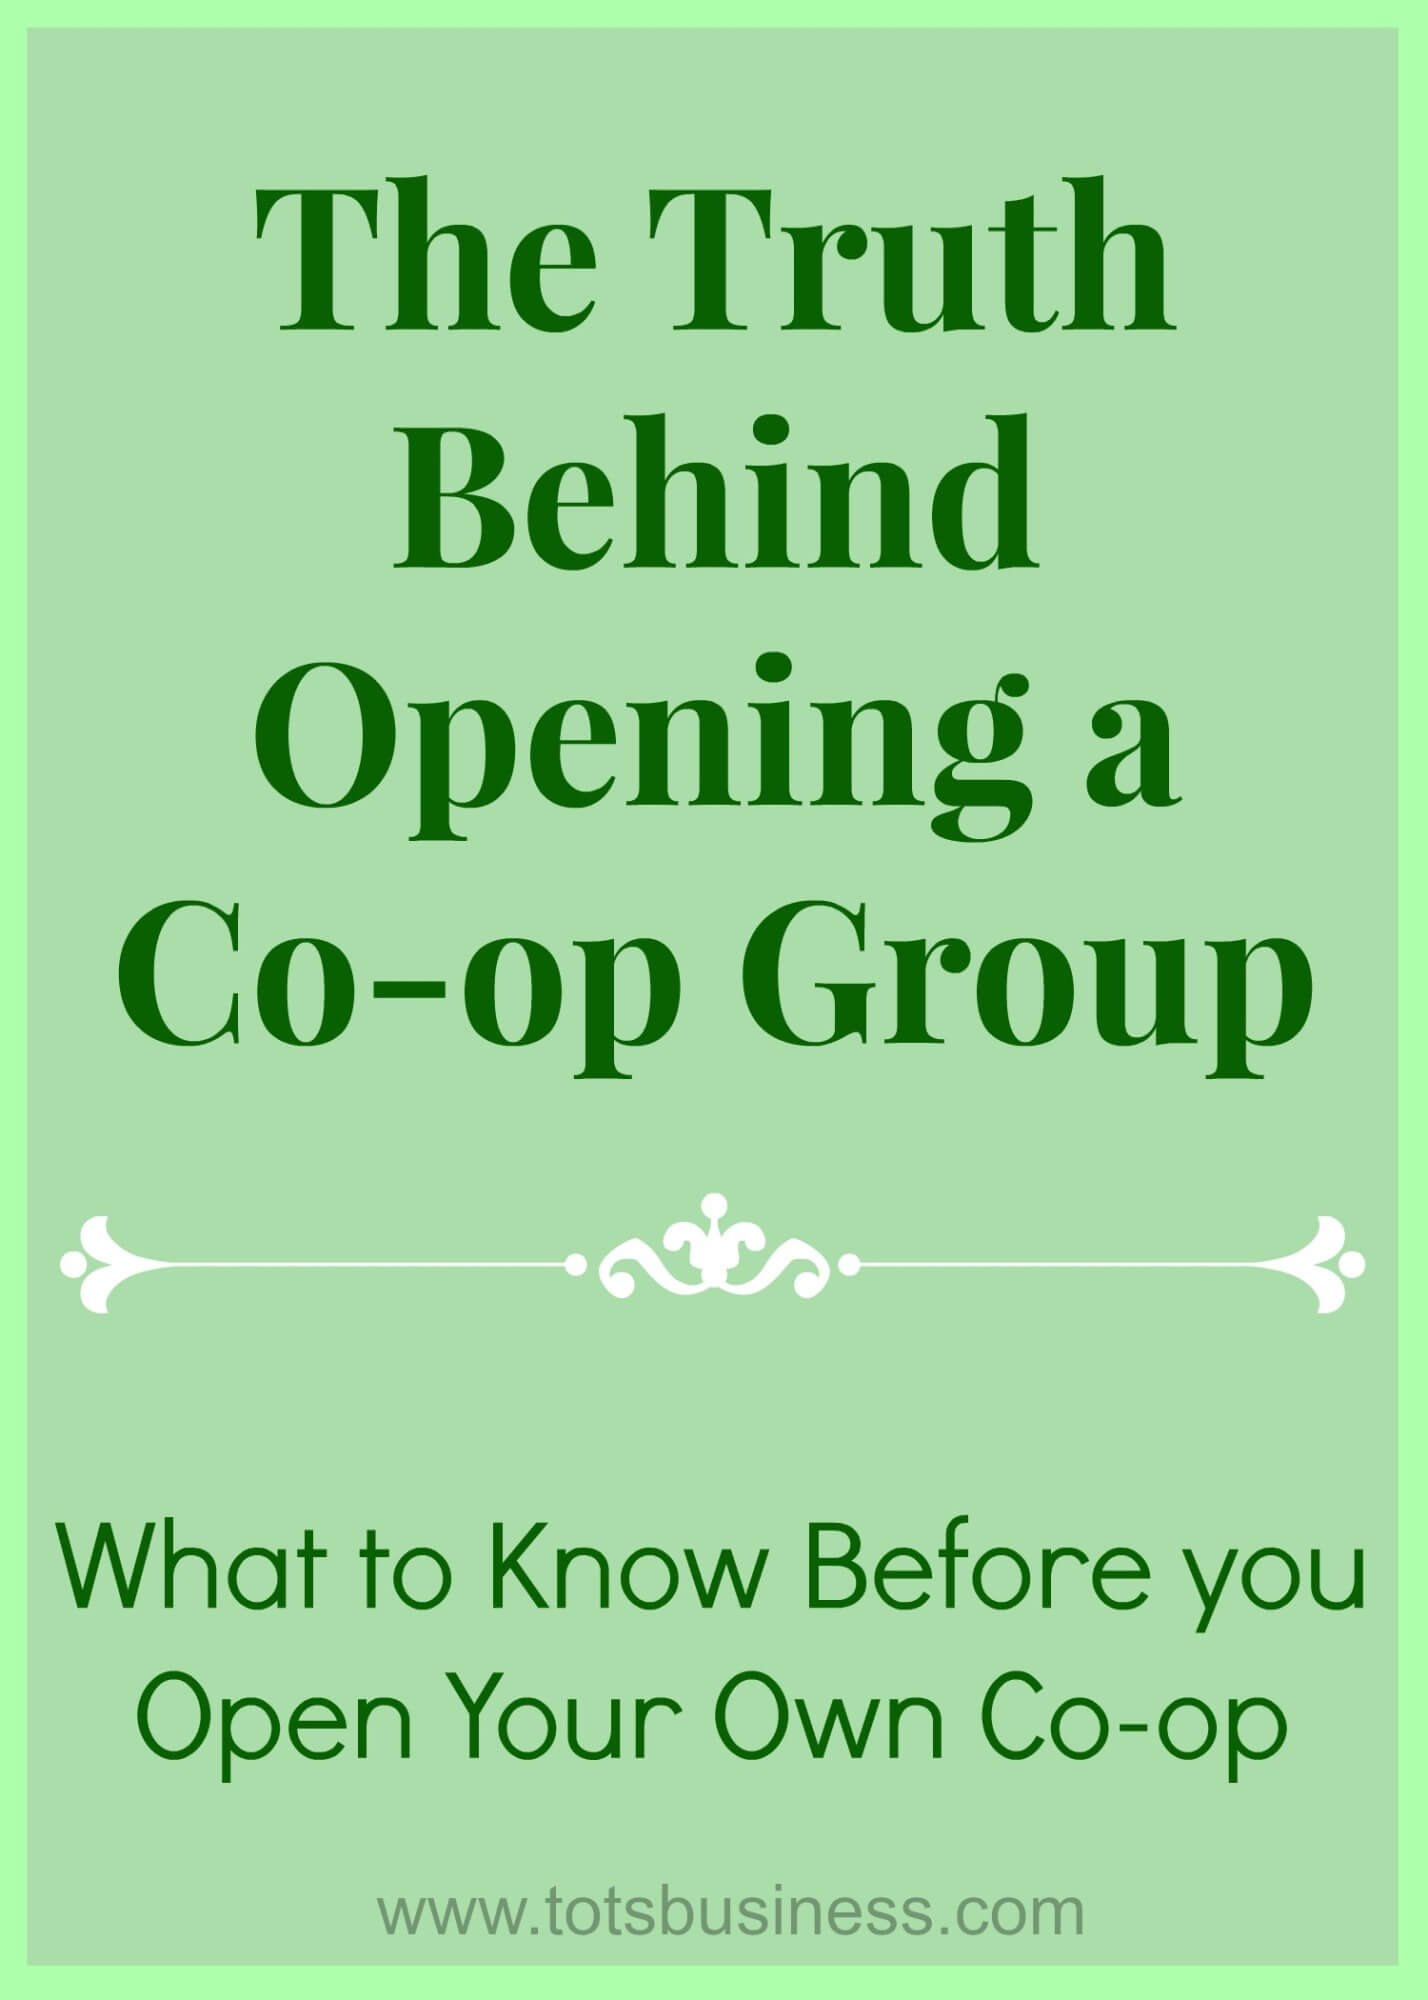 Thinking Outside The Sandbox: Business The-Truth-Behind-Running-a-Coop-Group The Truth Behind Opening a Co-op Group. All Posts Small Business  open co-op group buy co-op